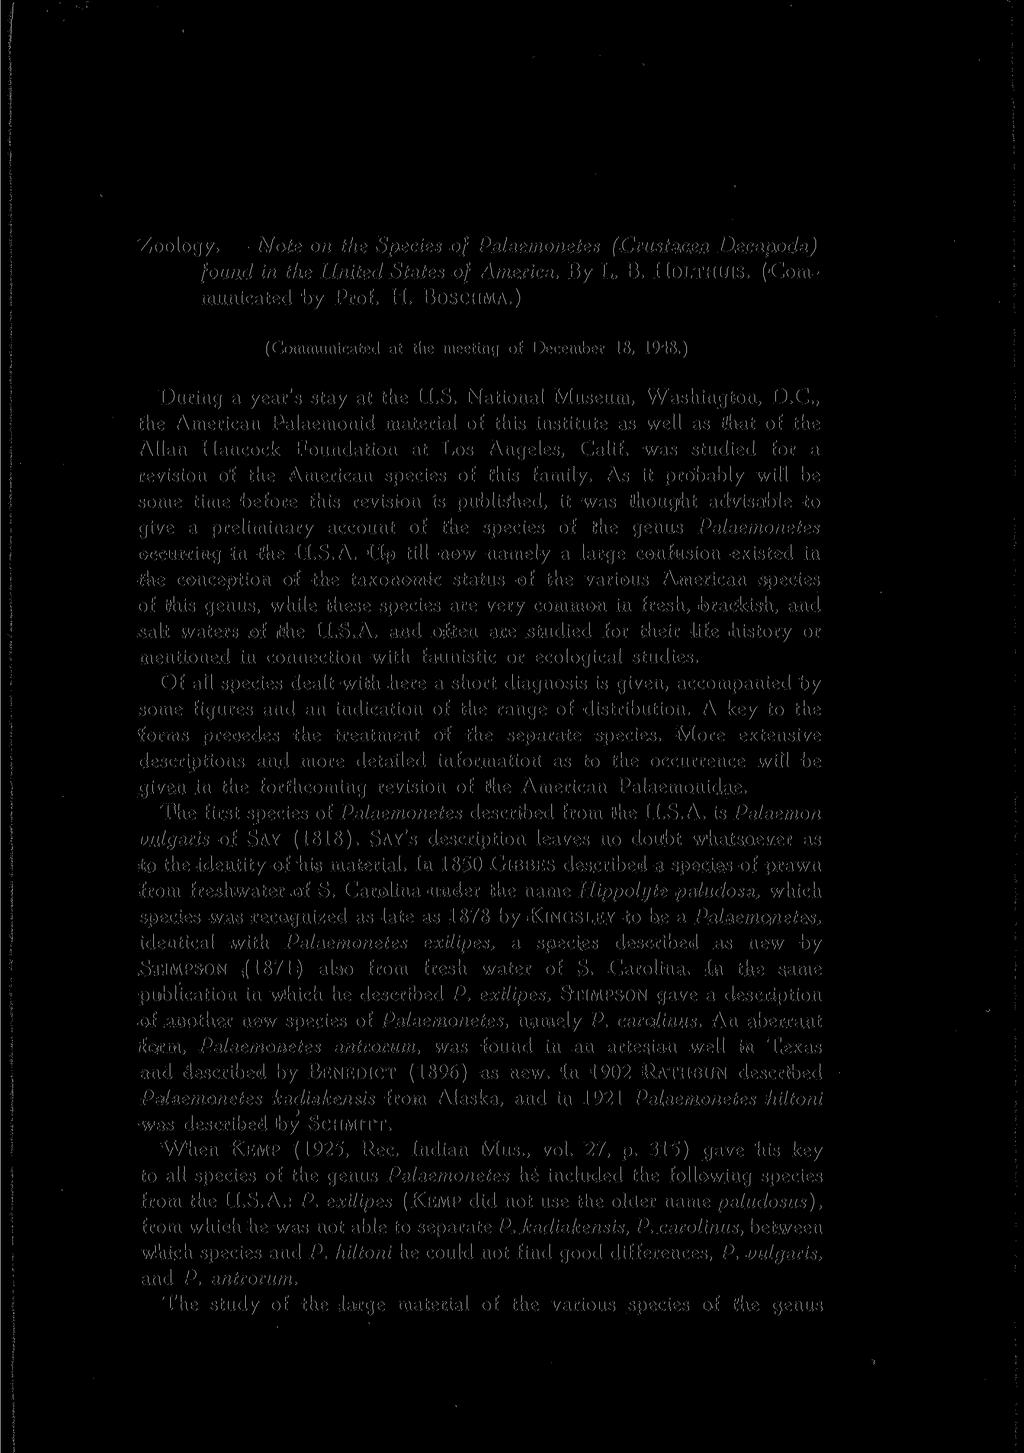 Zoology* Note on the Species of Palaemonetes (Crustacea Decapoda) found in the United States of America, By L, B. HOLTHUIS. (Communicated by Prof. H. BOSCHMA.